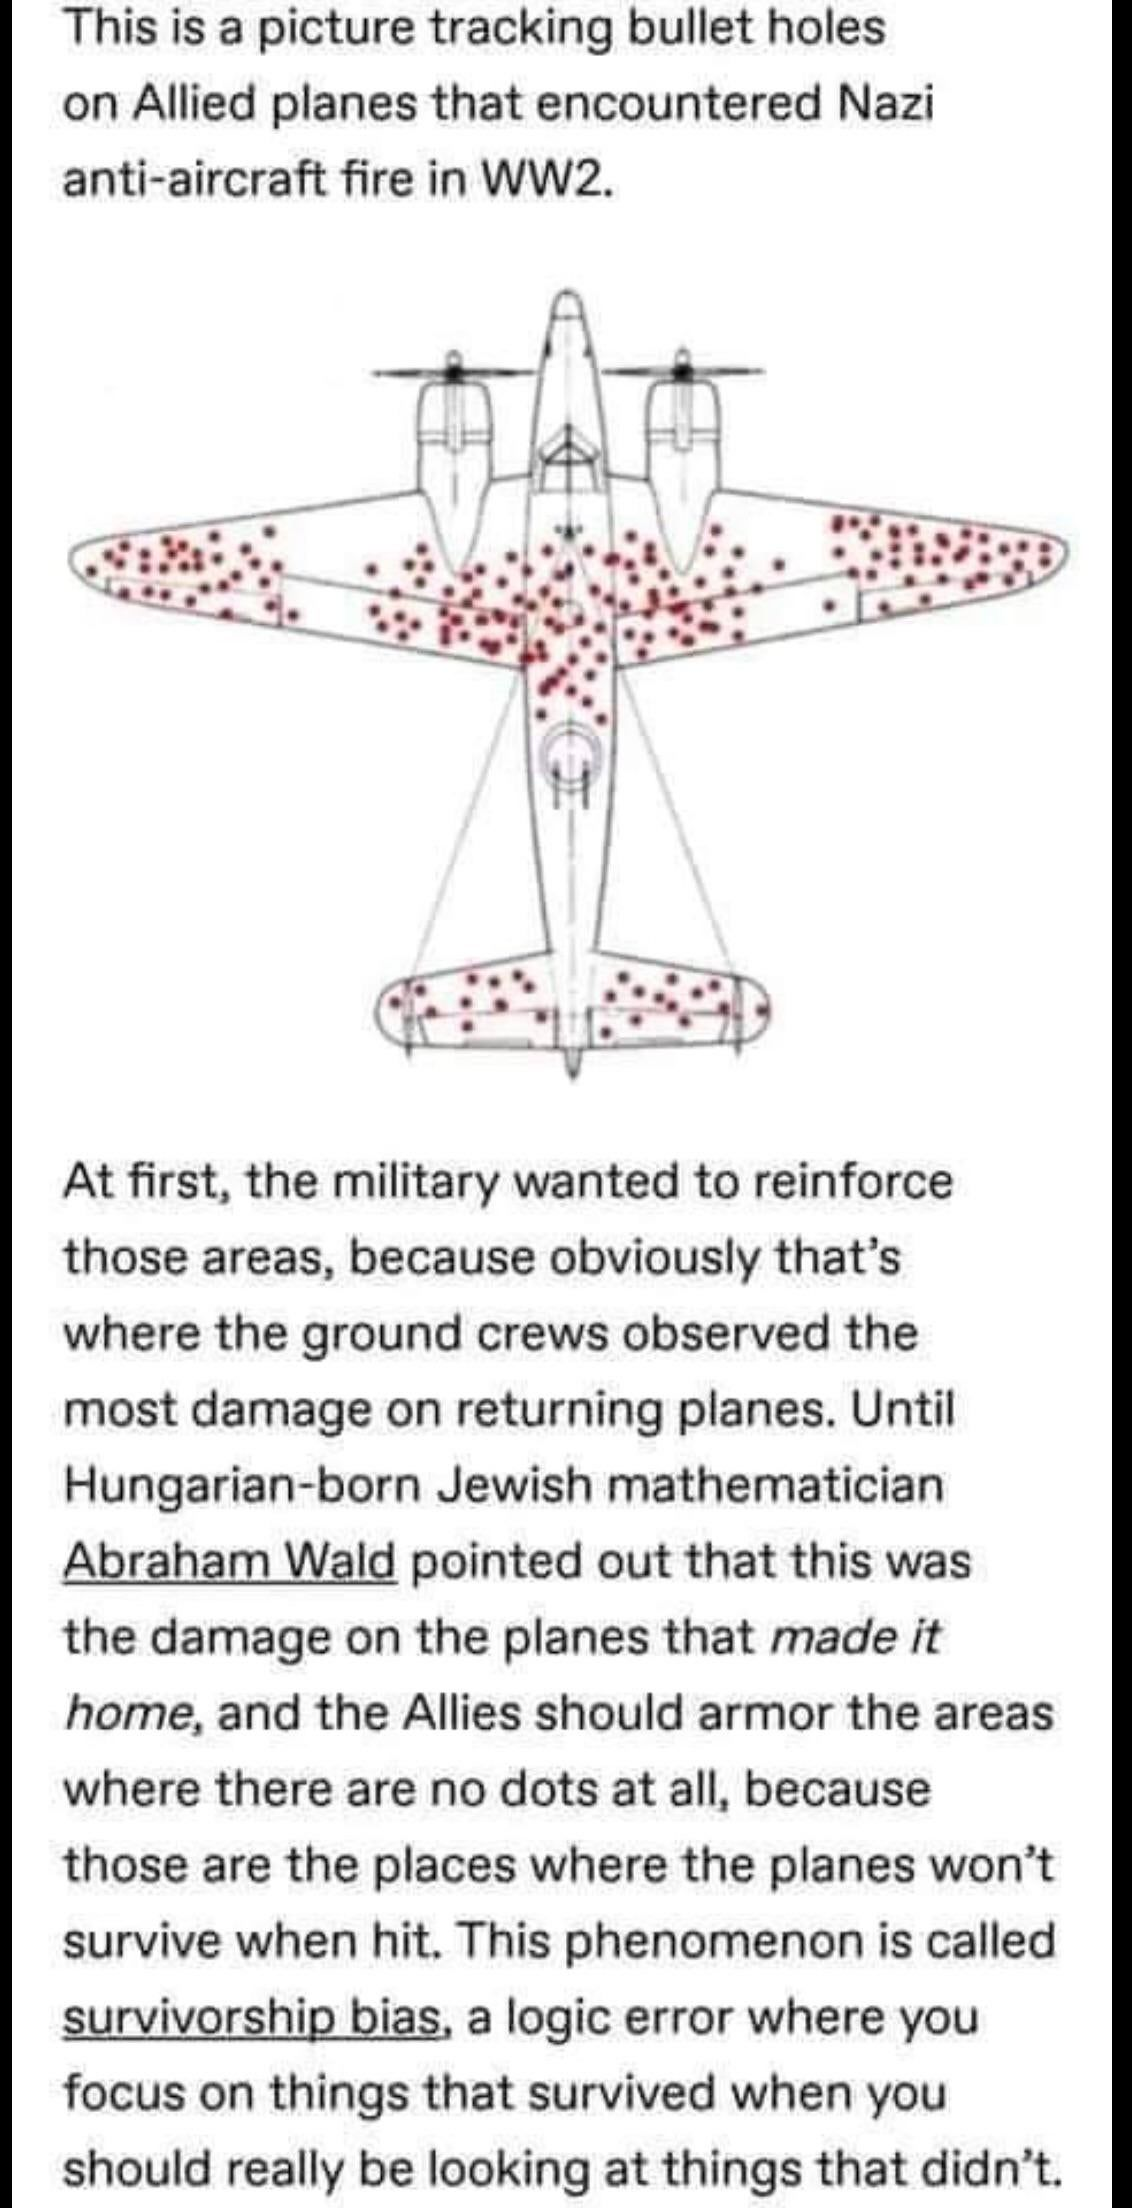 Saw this on Facebook, thought it was really intriguing